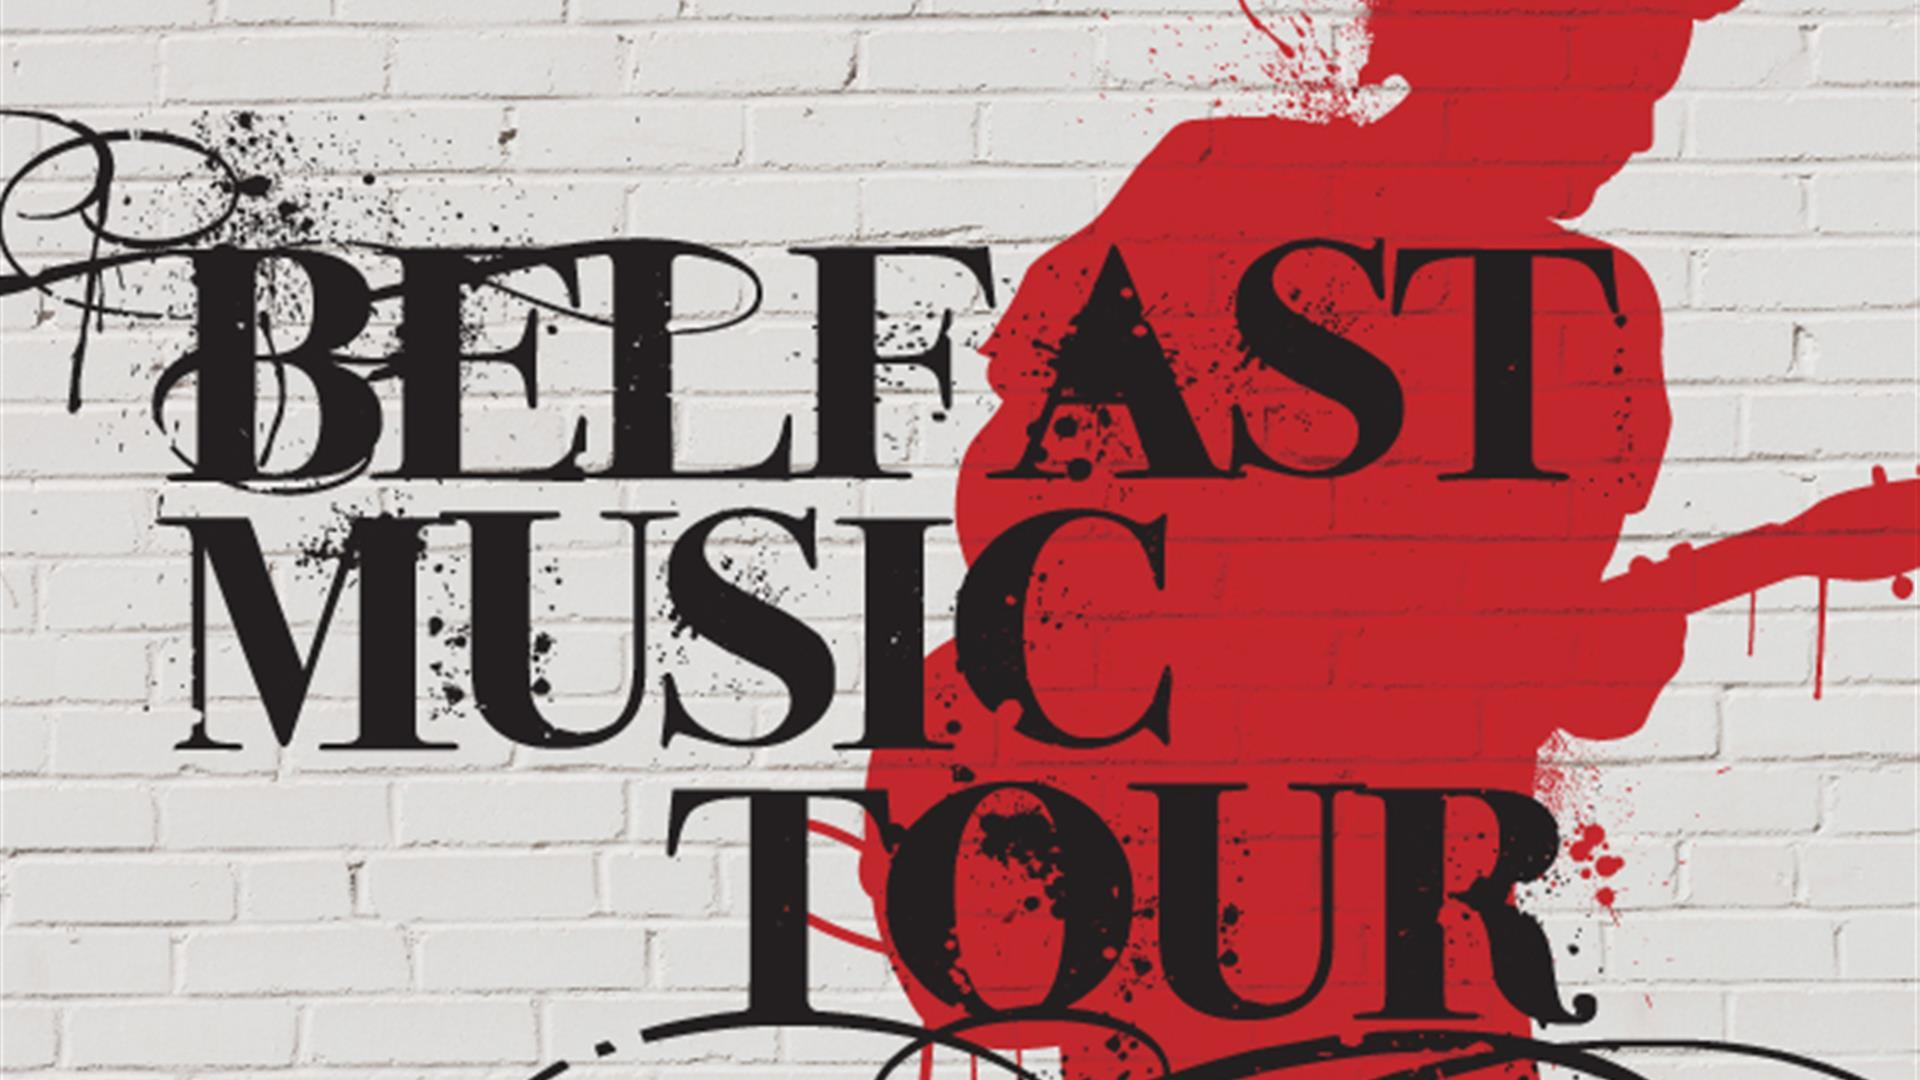 Belfast Music Exhibition and Tour